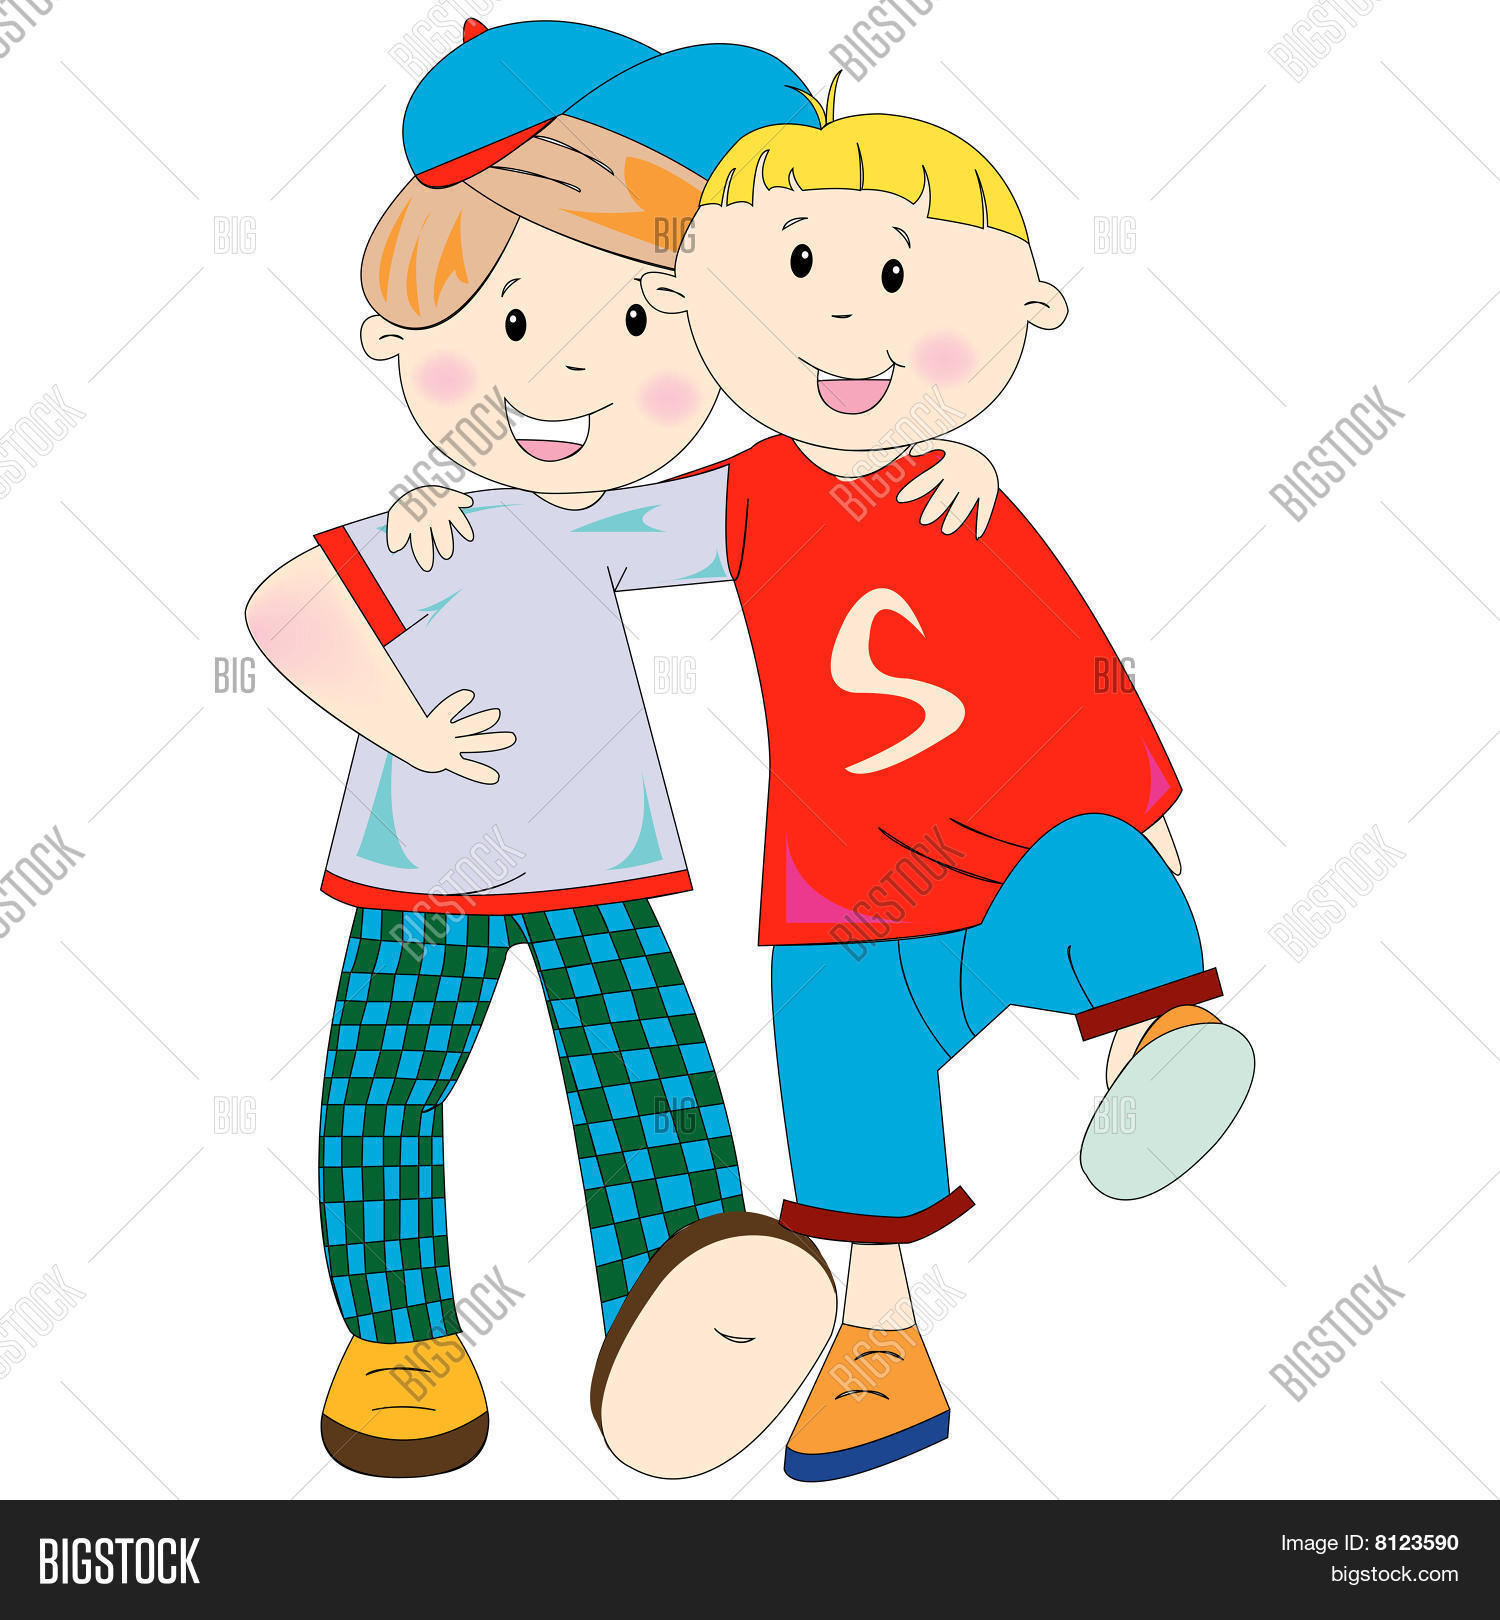 Best Friends Cartoon Vector & Photo (Free Trial) | Bigstock